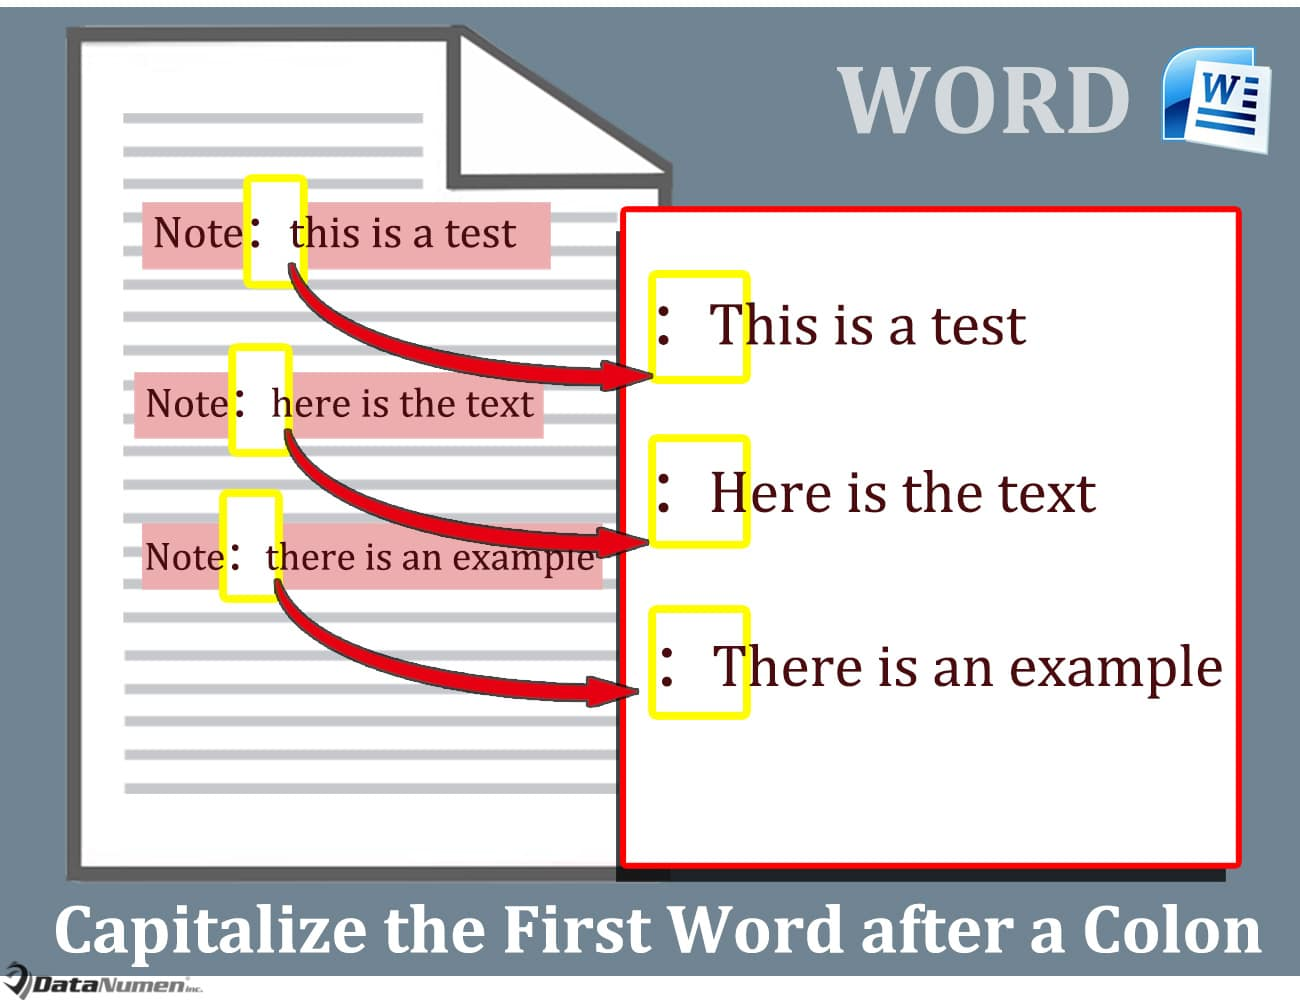 Capitalize the First Word after a Colon in Your Word Document